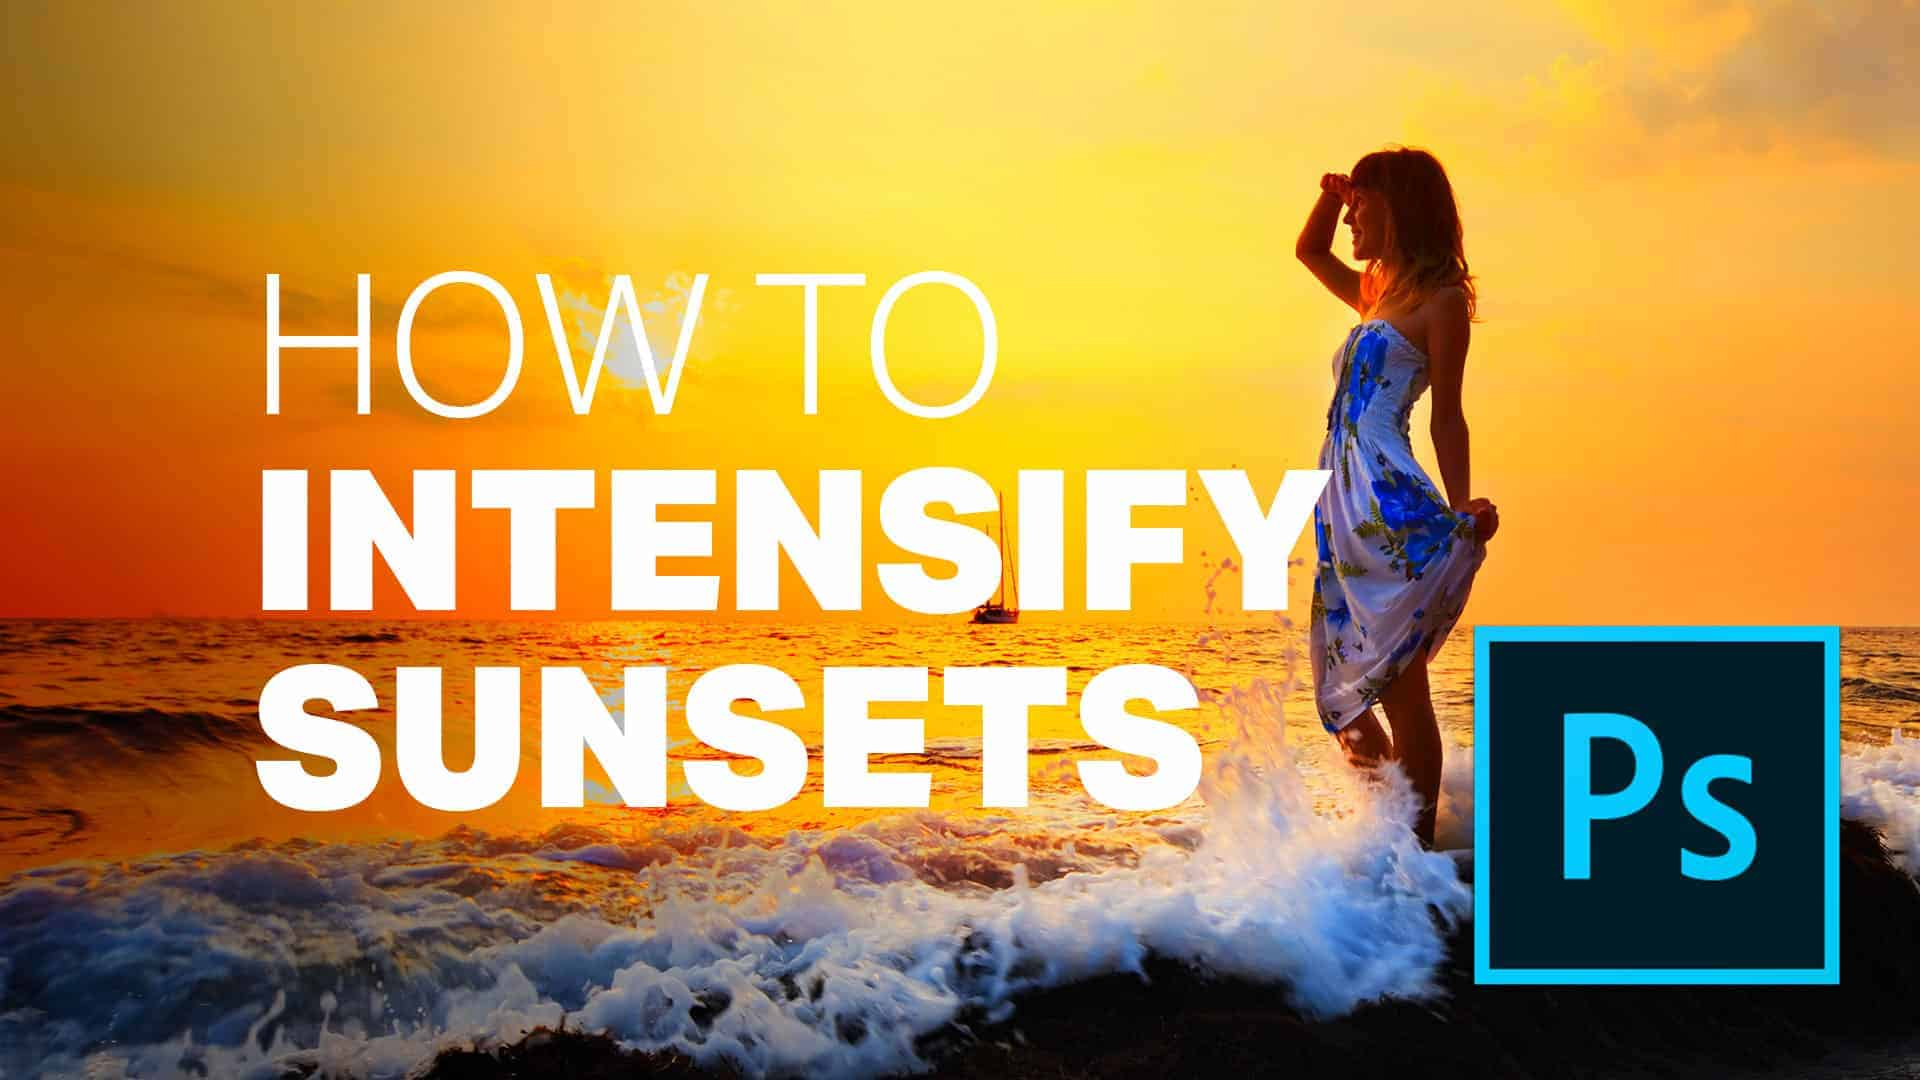 New Photoshop Trick to Improve and Intensify Sunset Photos